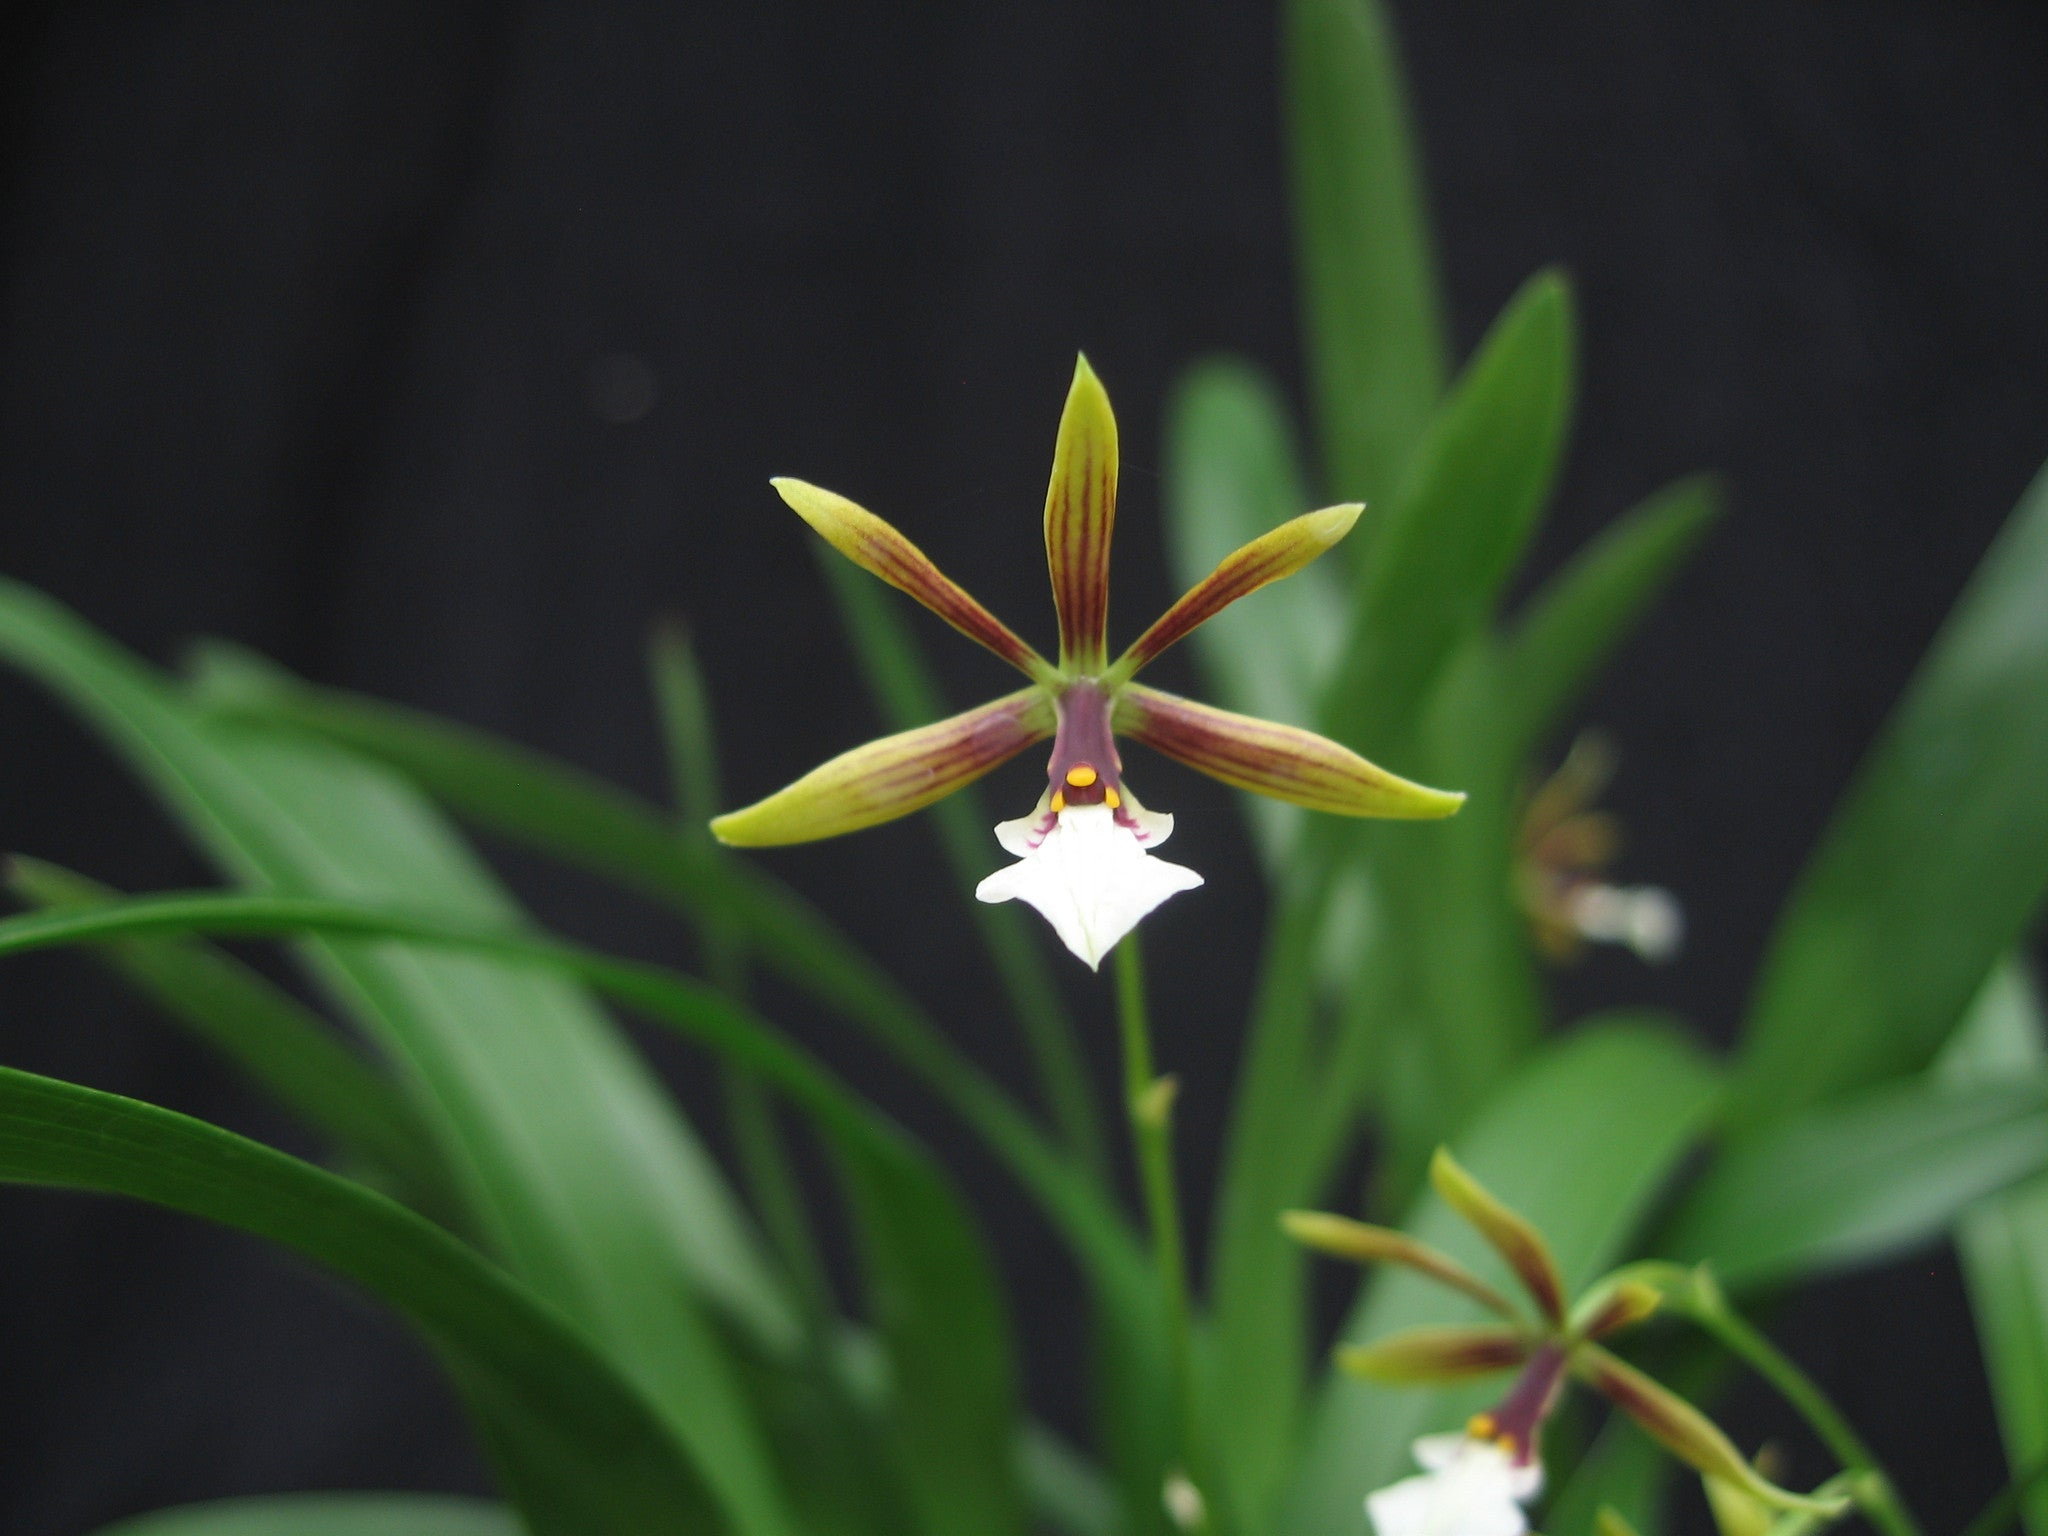 prosthecheaholmsgreenemerald petrens prosthechea green shop holms holm products s orchid emerald